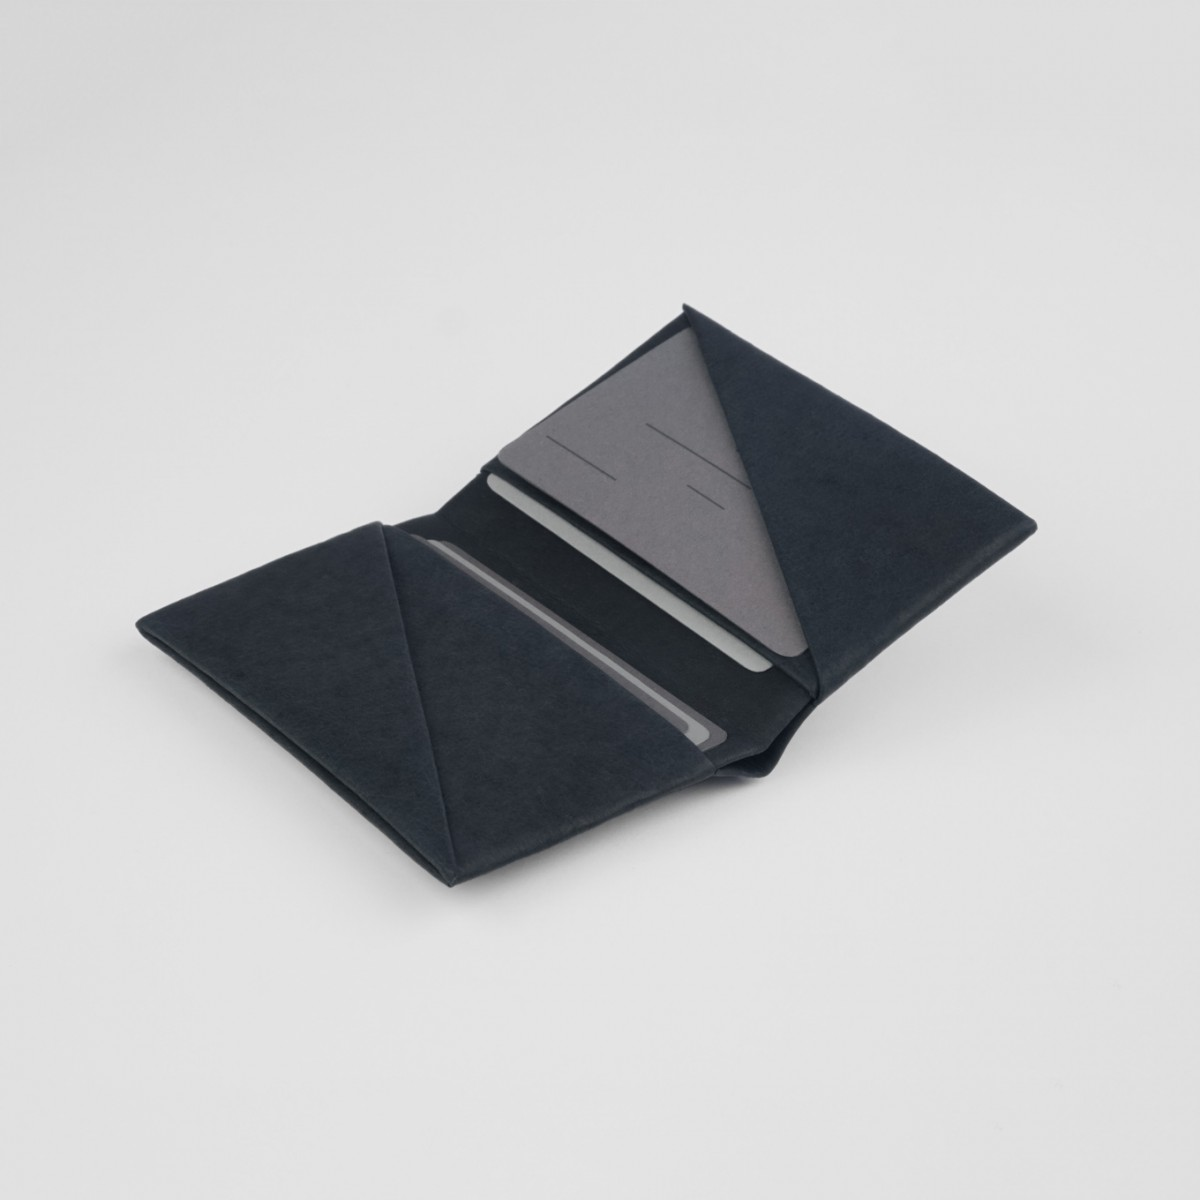 VANOOK Bi-Fold Card Case Small / Charcoal